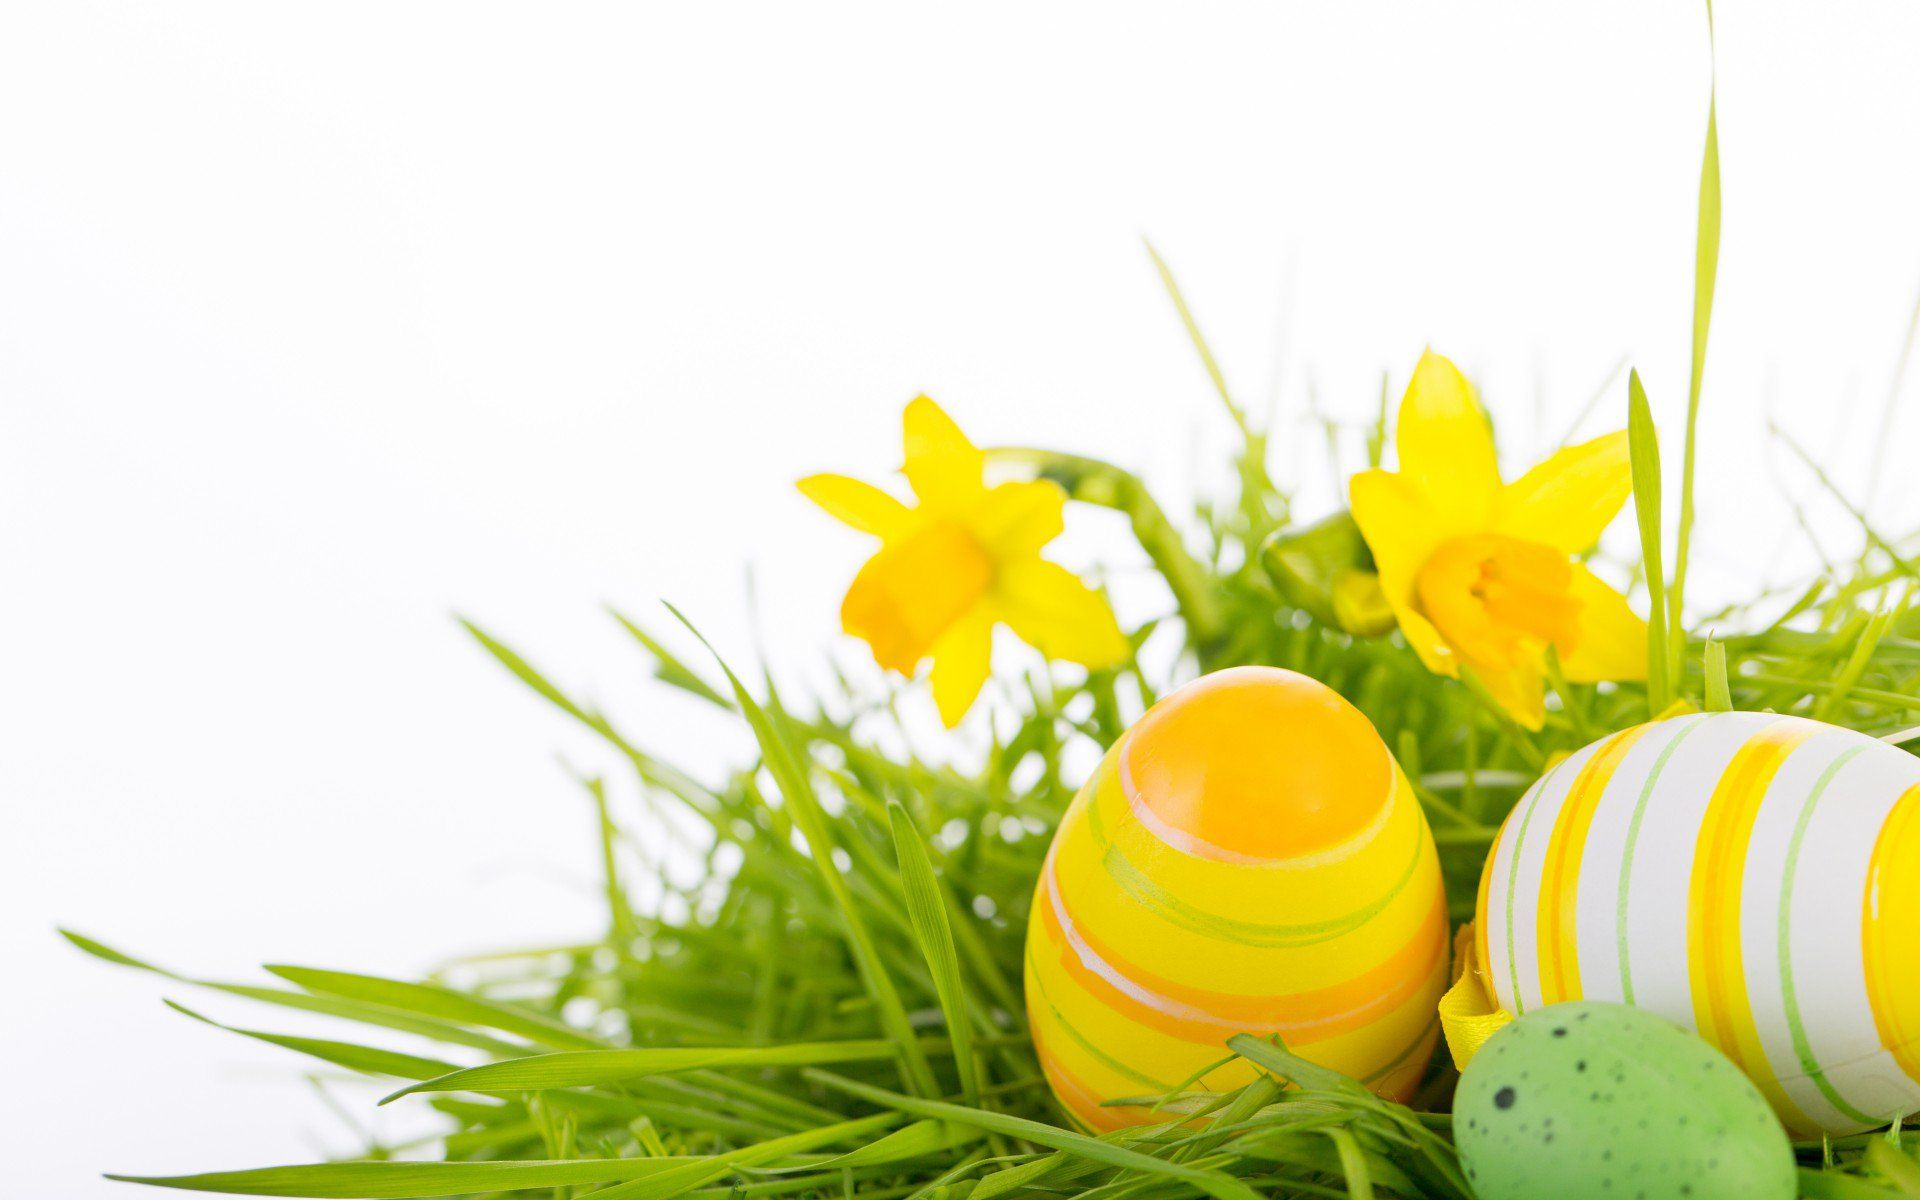 HD Easter Images